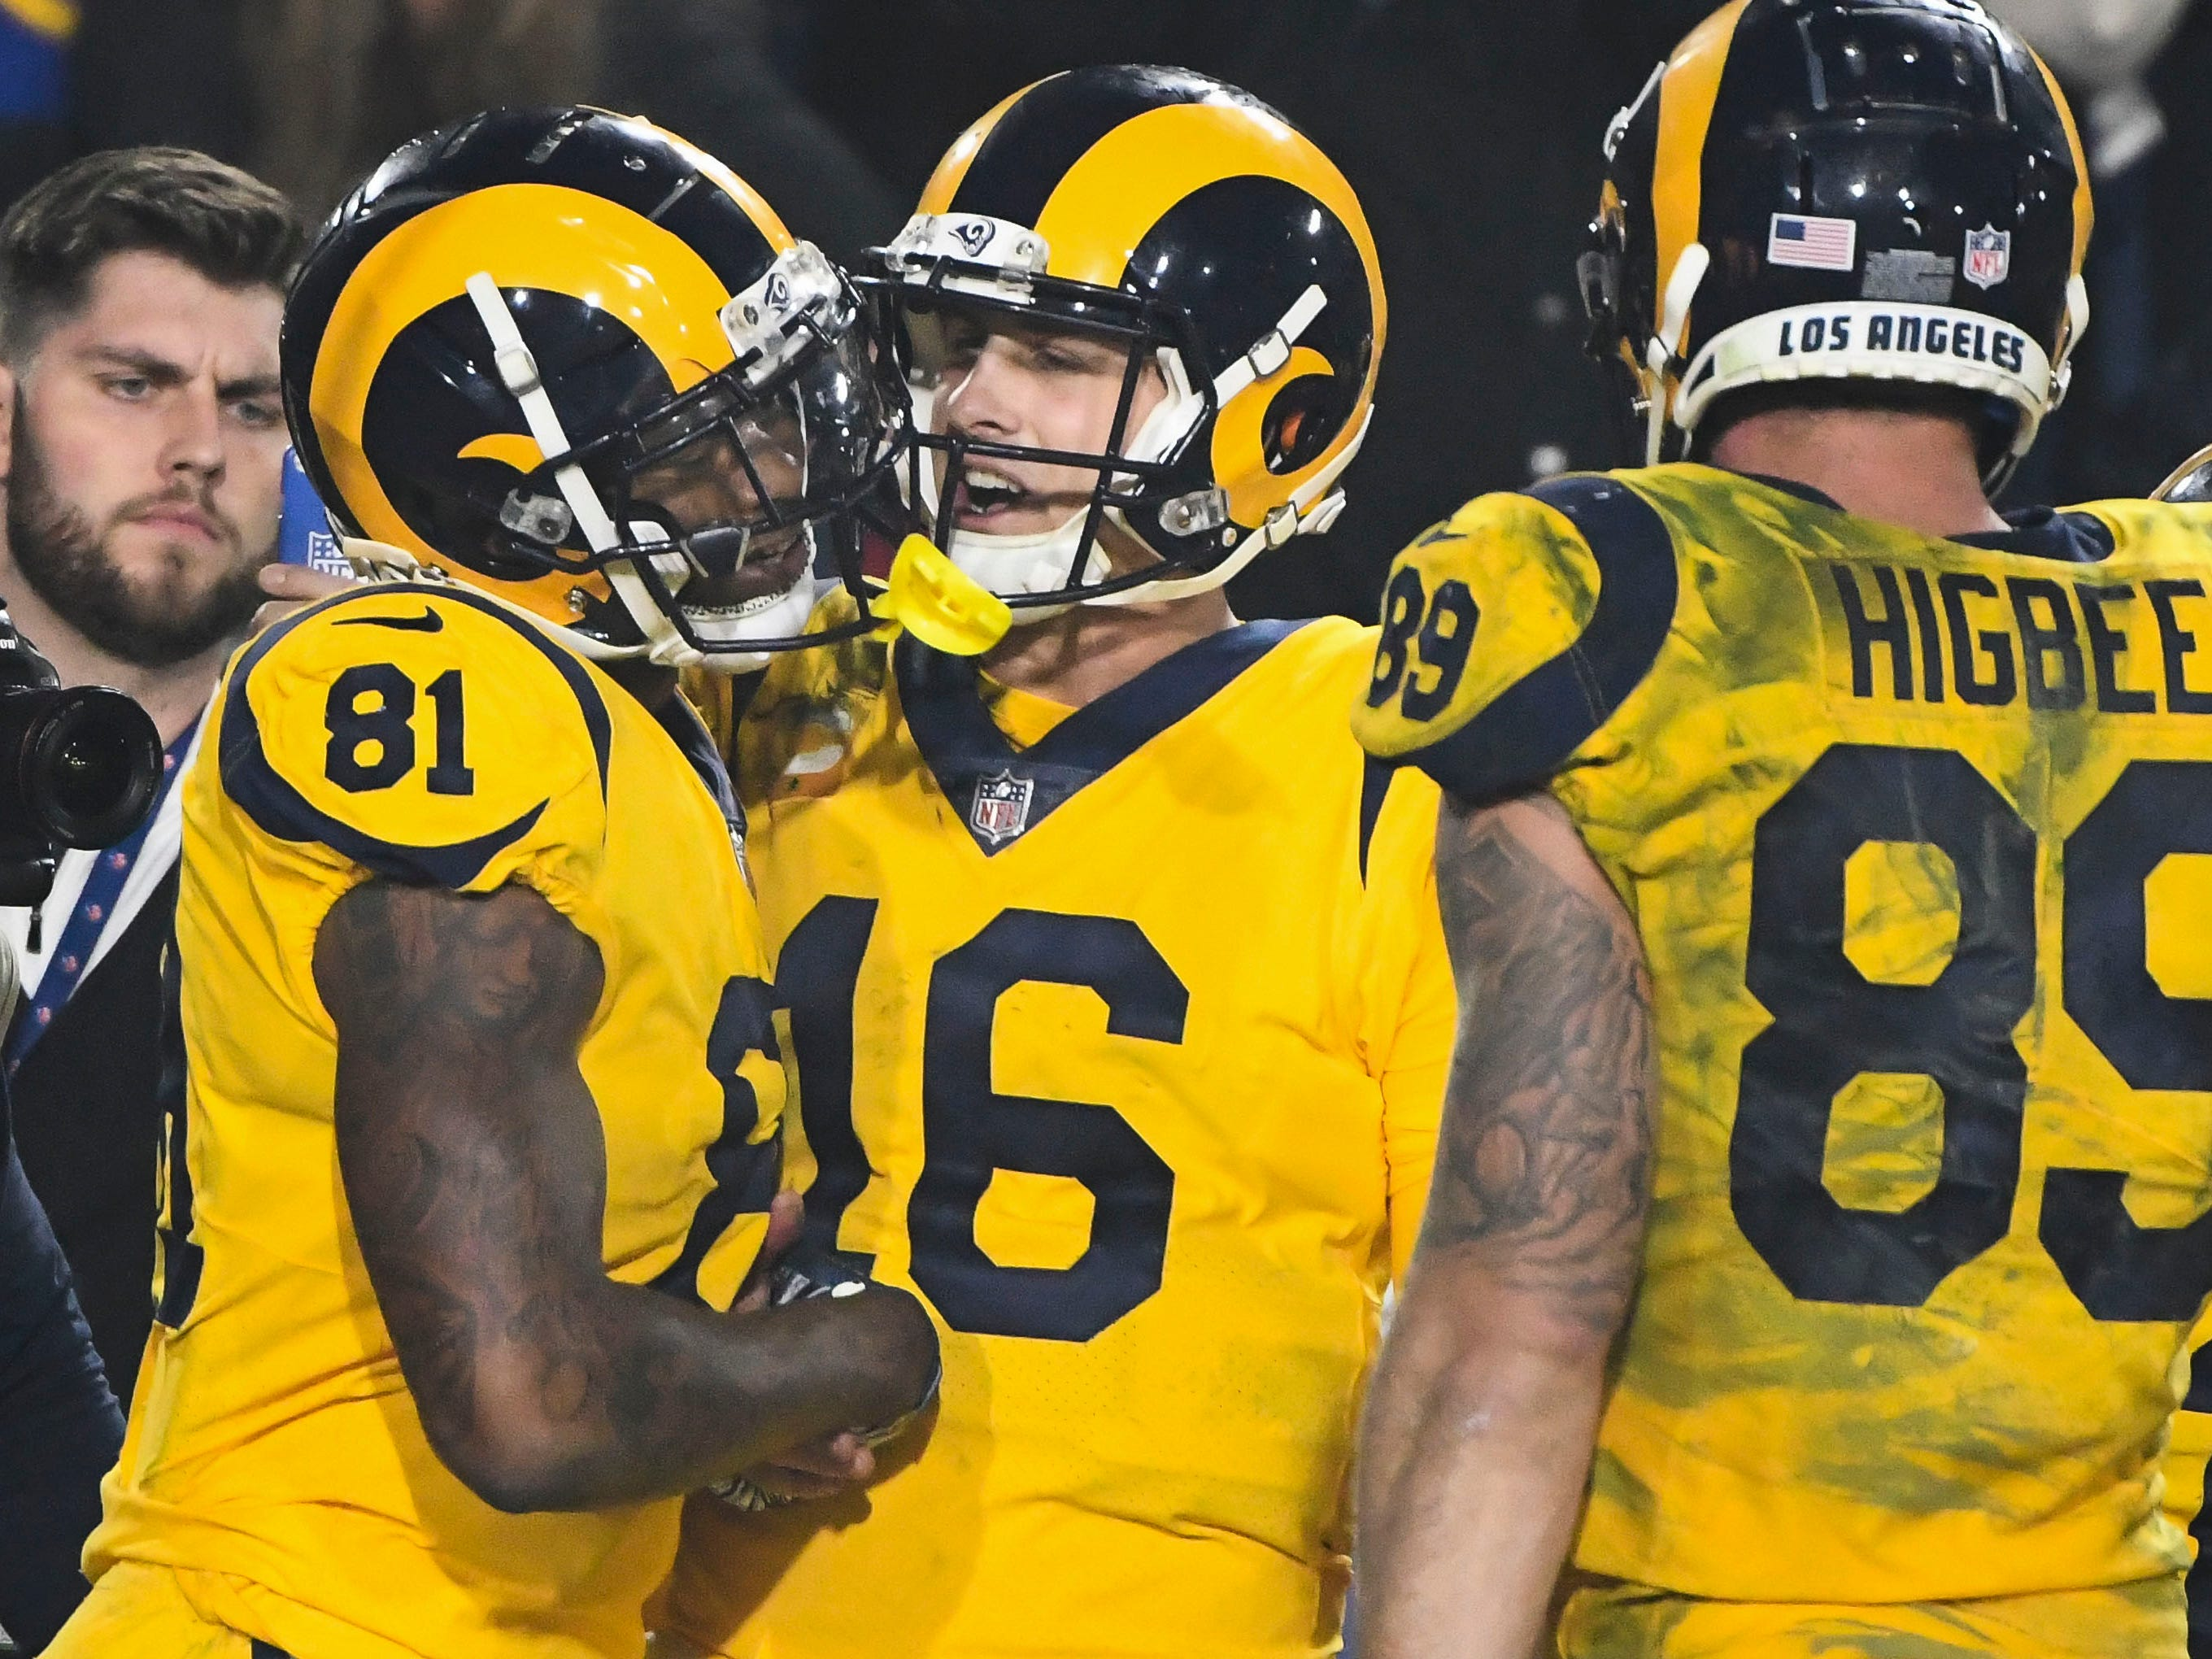 2. Rams (3): Of course, sometimes a 40-burger doesn't quite get the job done. Good thing L.A. can crank out half a hundred on a night when Todd Gurley is shut out.